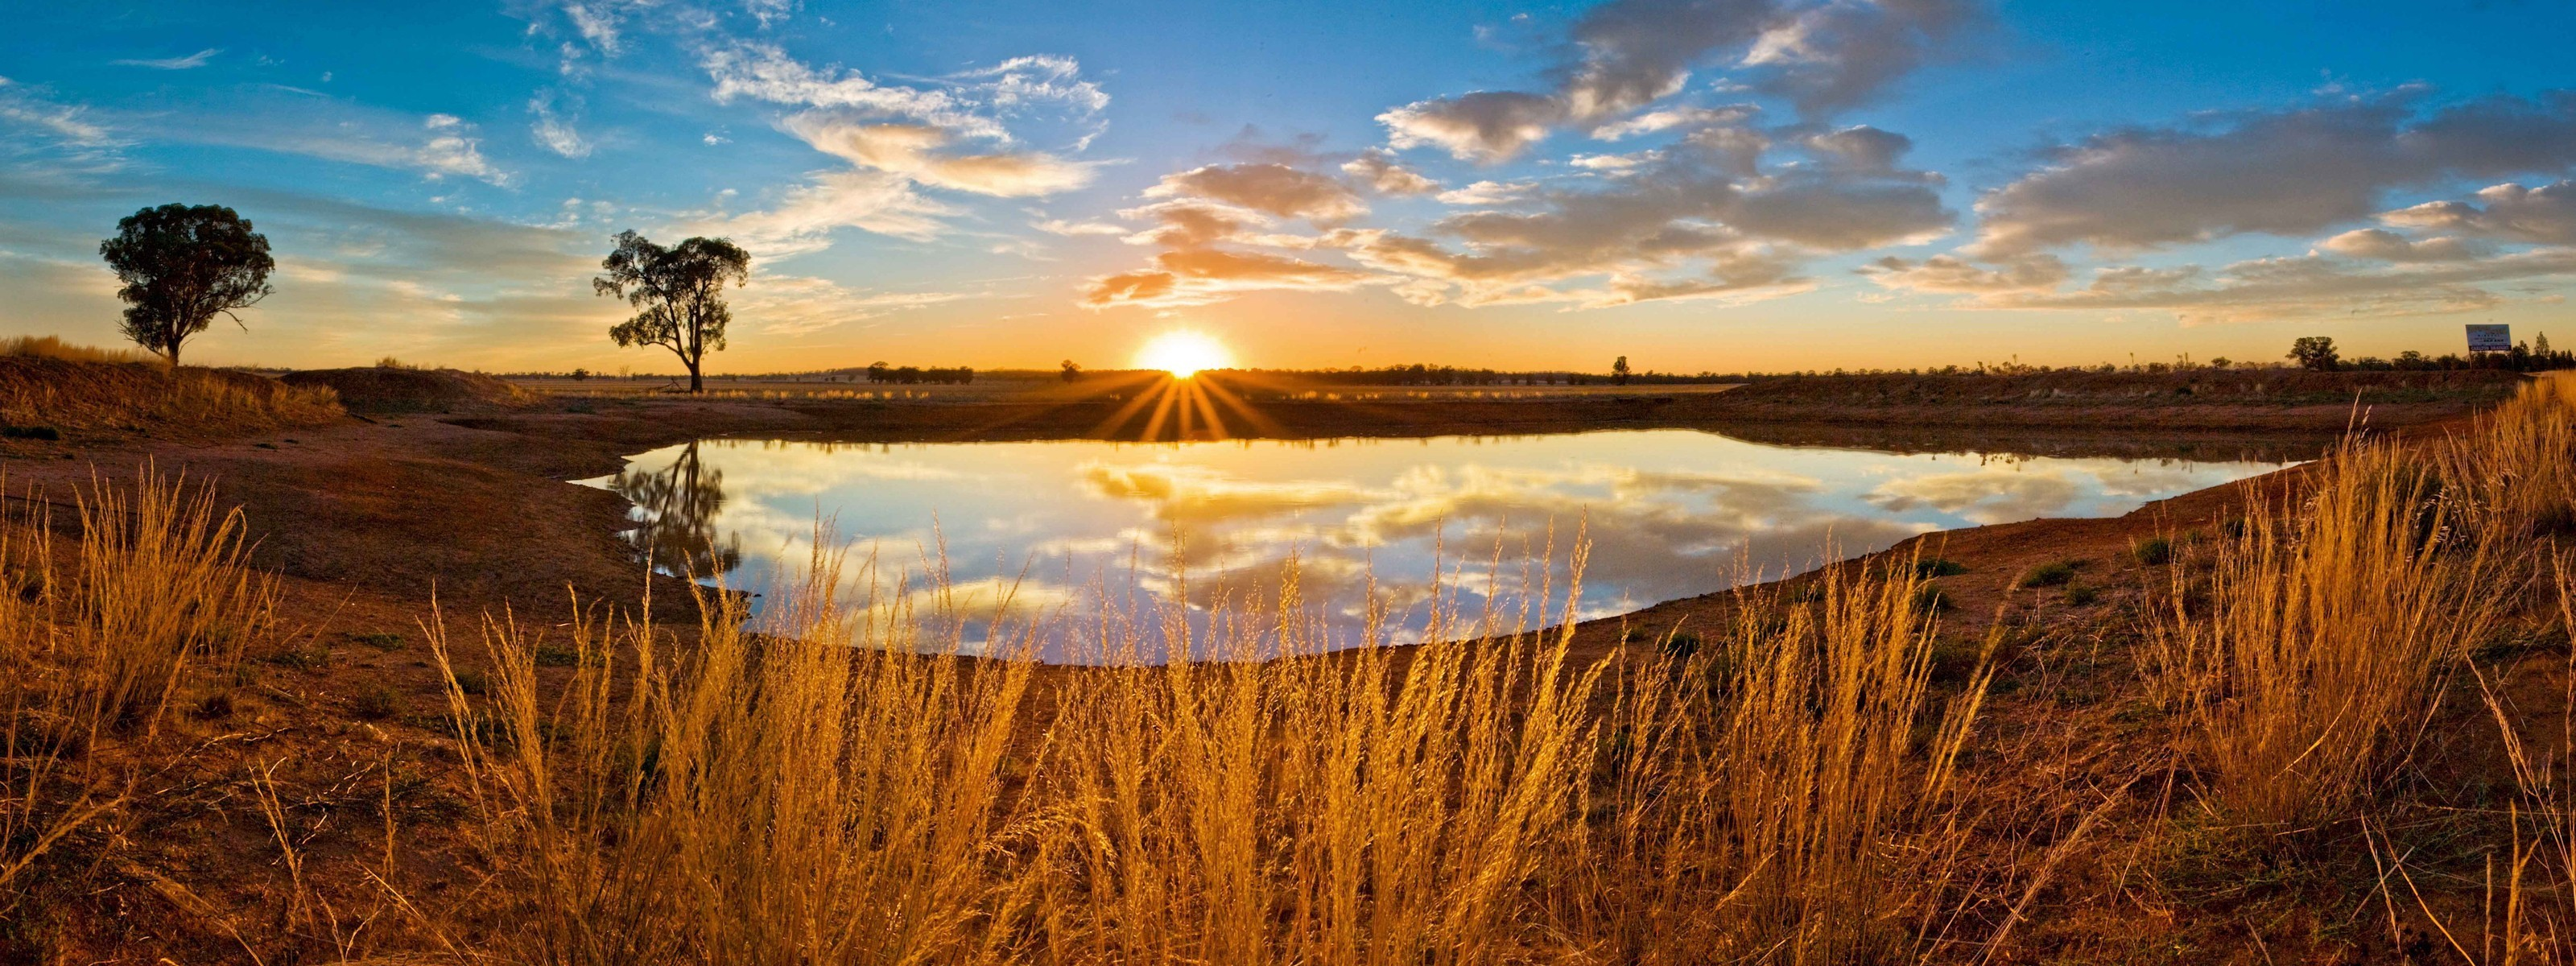 46975 download wallpaper Landscape, Nature, Sunset, Lakes screensavers and pictures for free